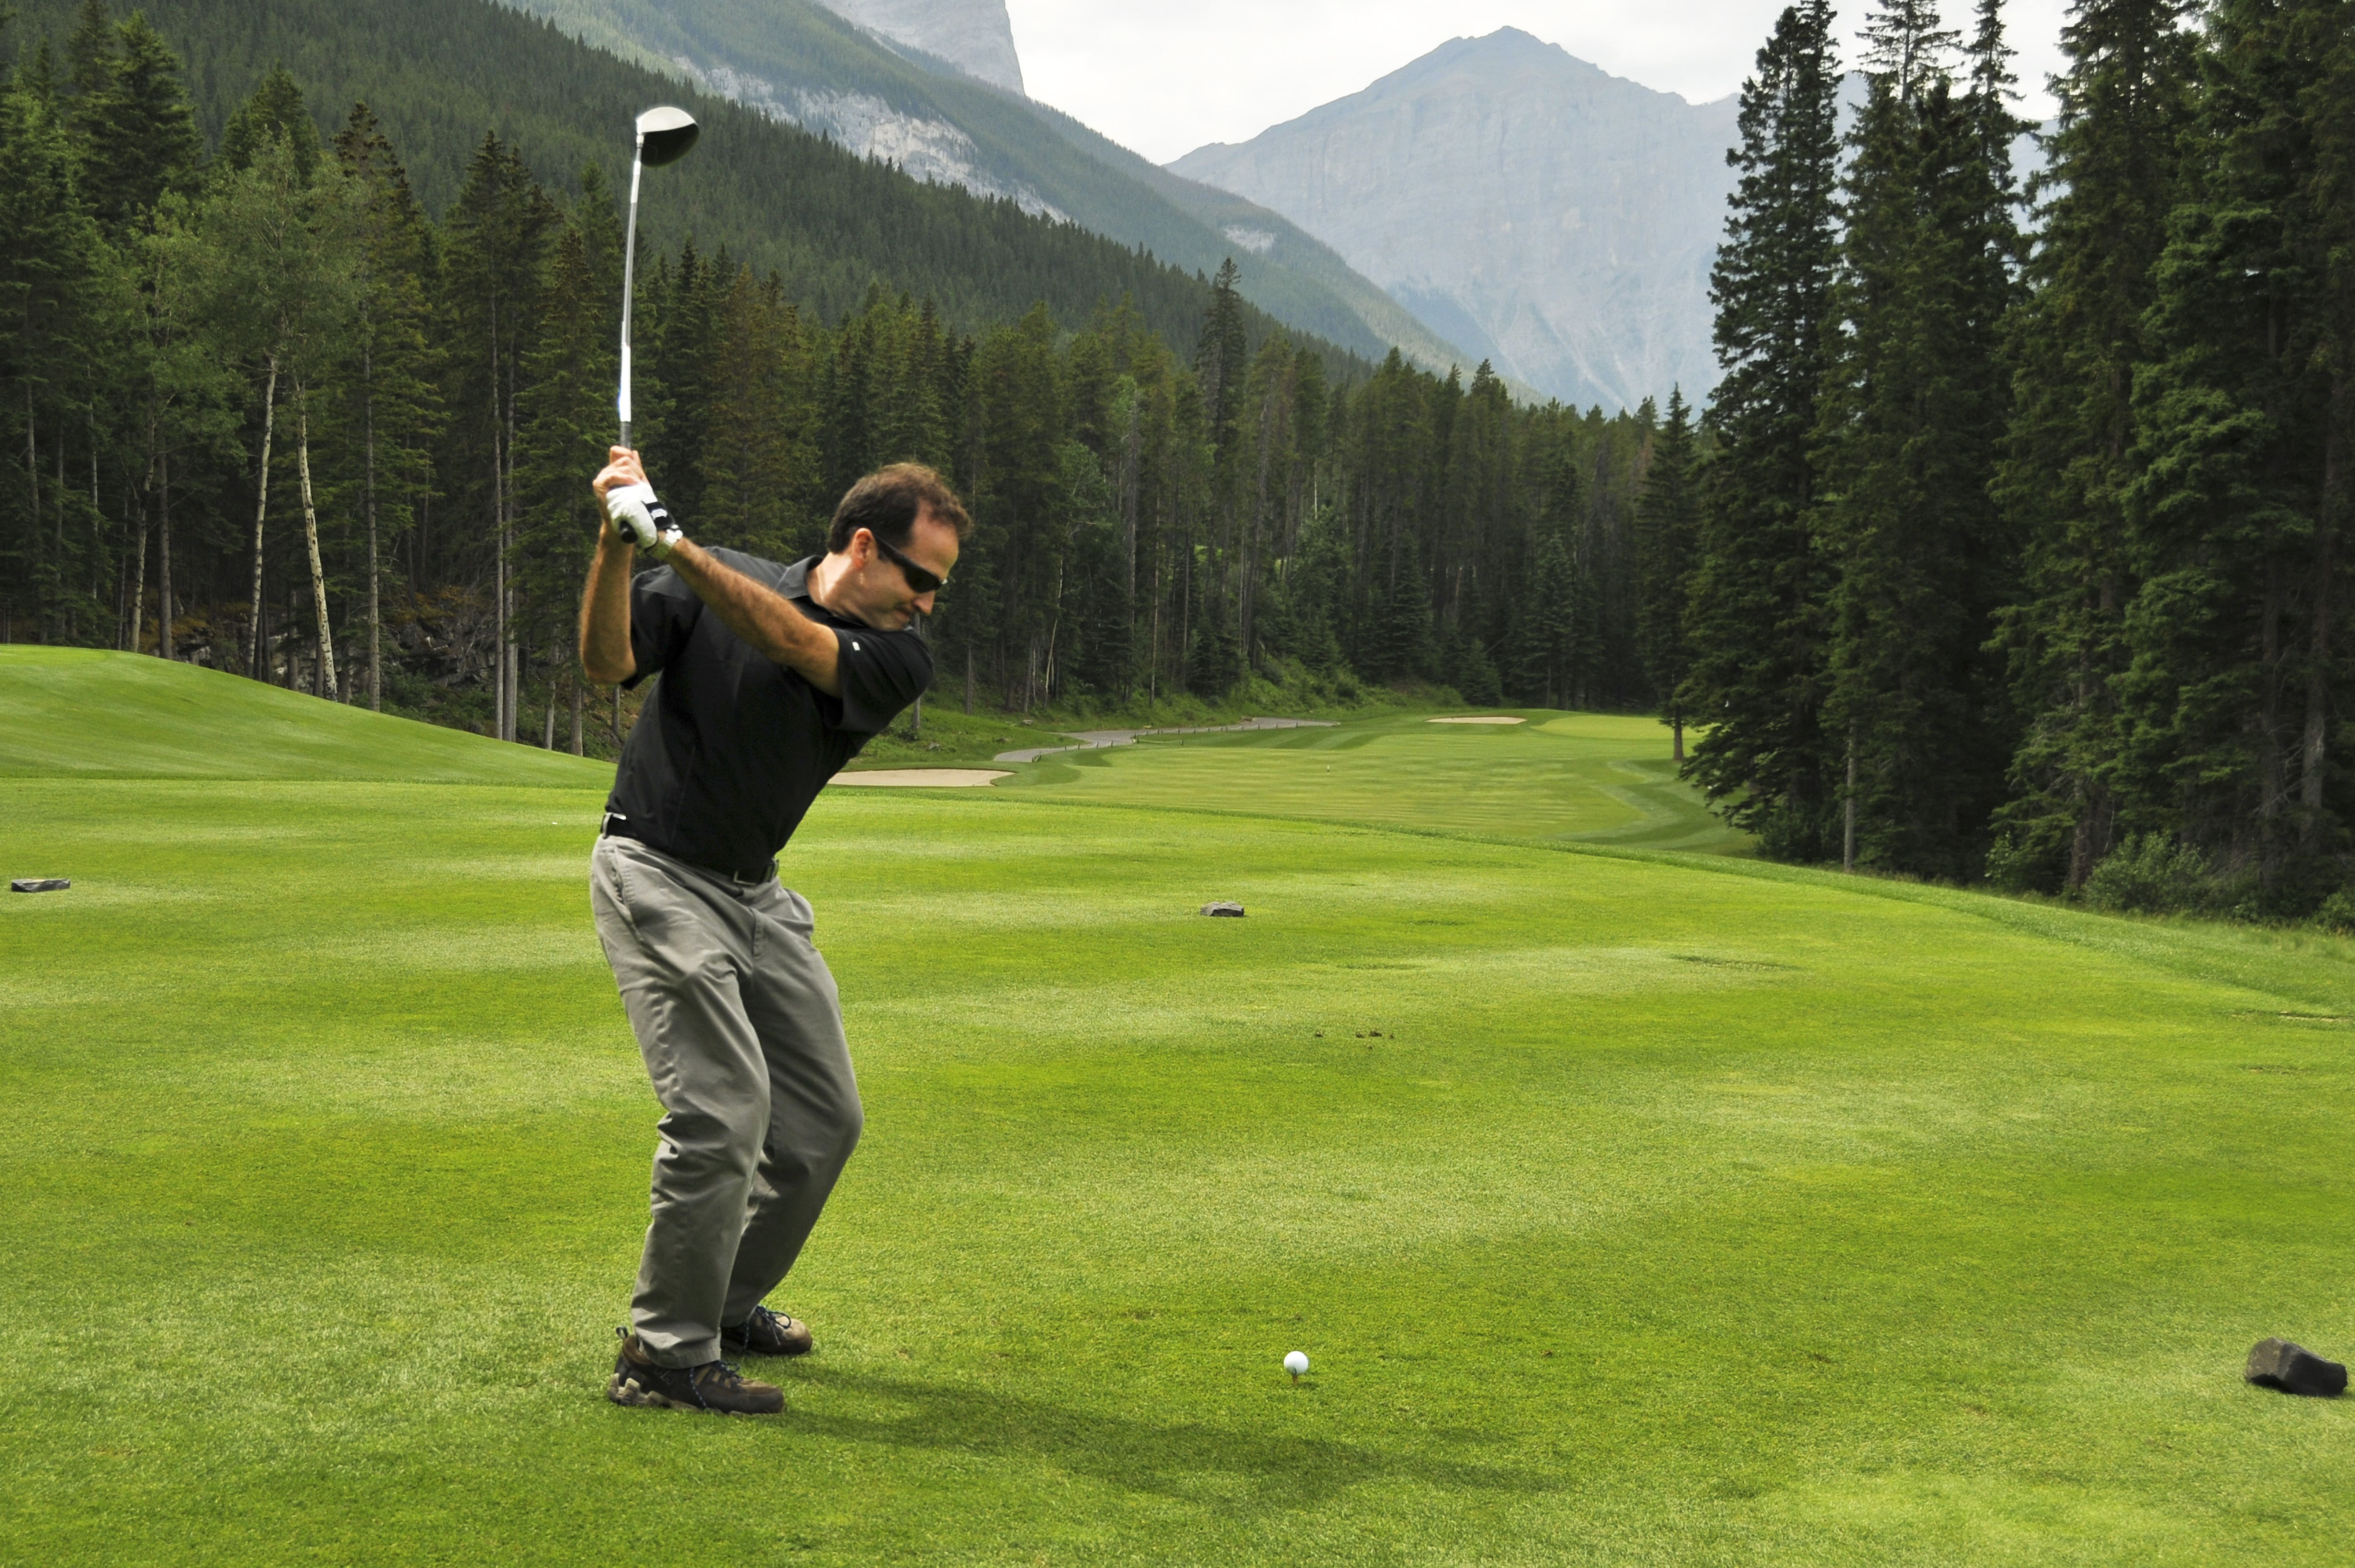 Do Singles Have the Right to Play Through in Golf?